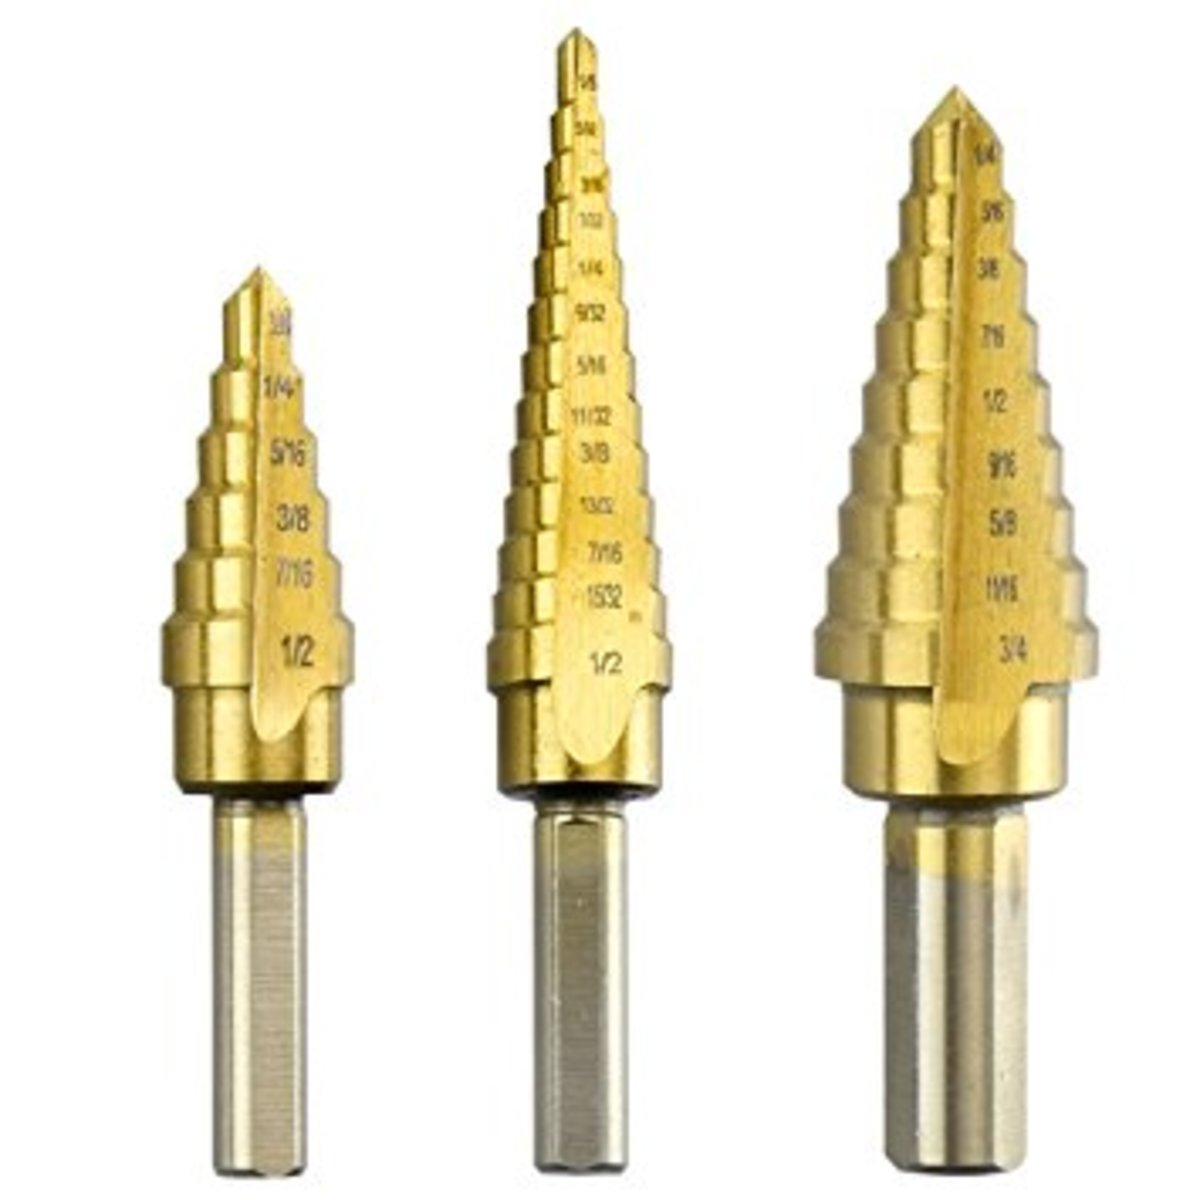 Set of step drill bits of various sizes and configurations